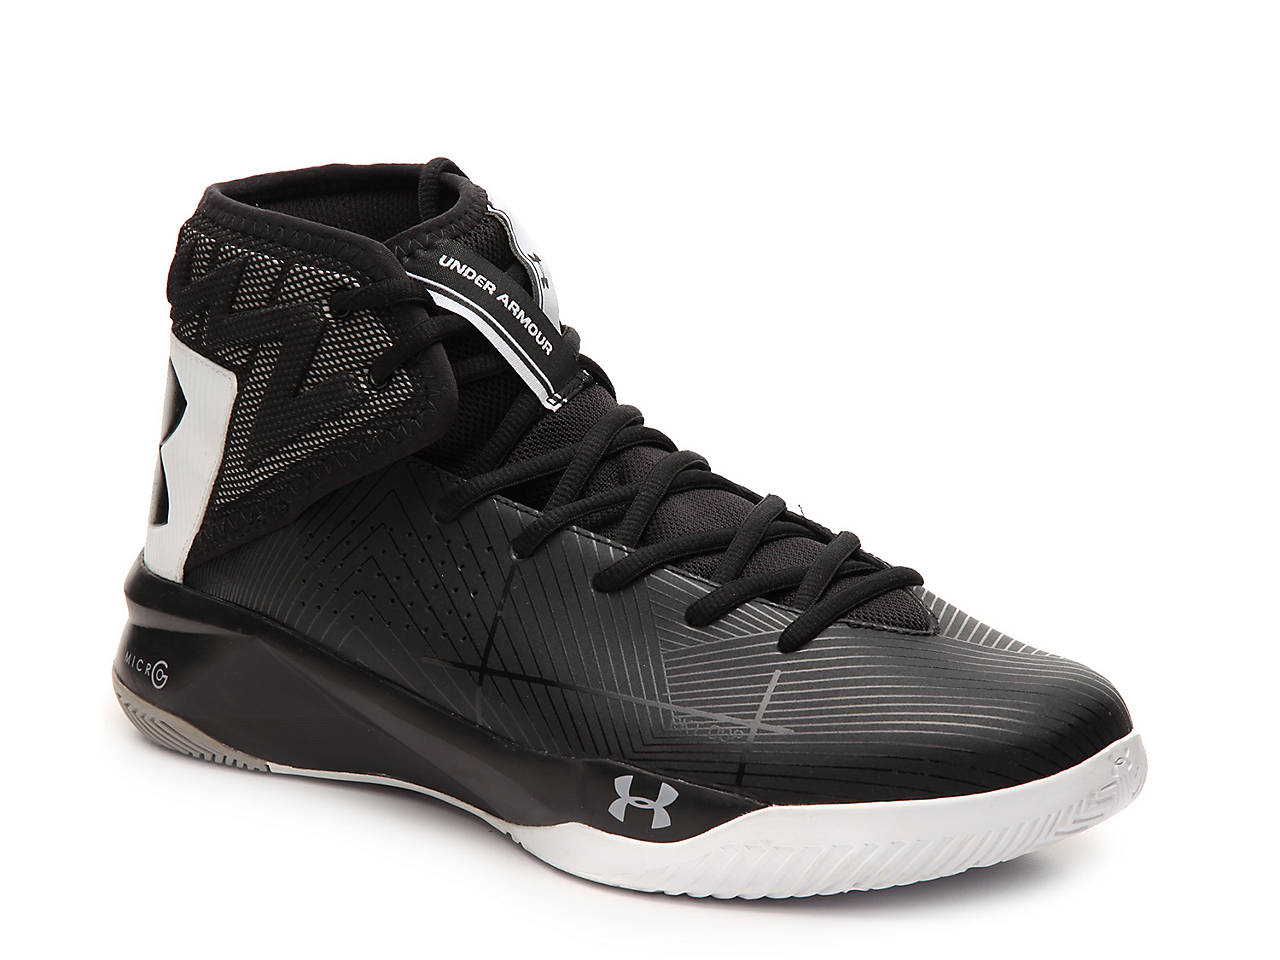 sports shoes 0f6ca 62a52 Rocket 2 Basketball Shoe - Men's